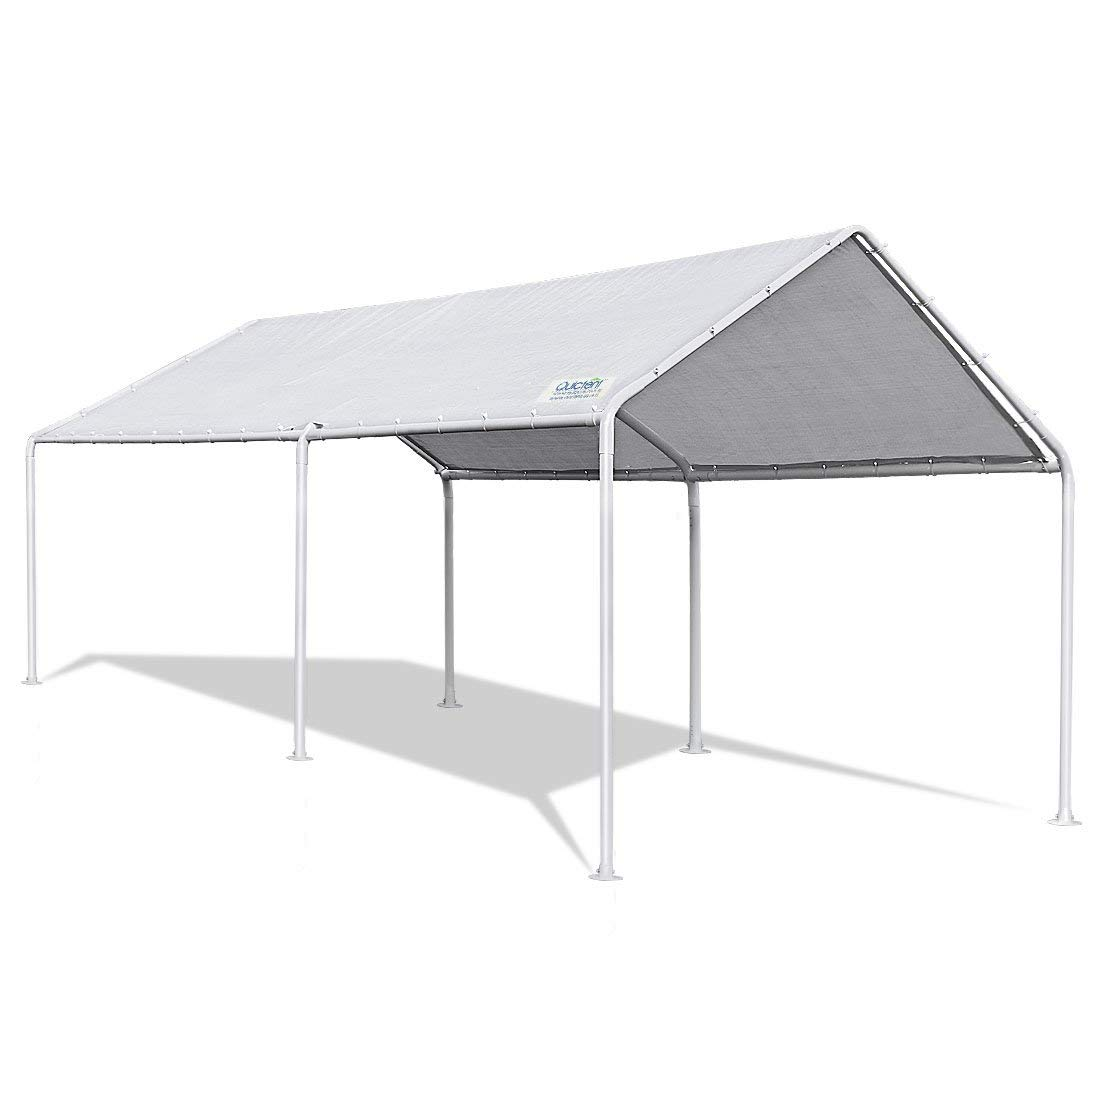 4. Quictent Heavy Duty Carport Car Canopy Party Tent Boat Shelter